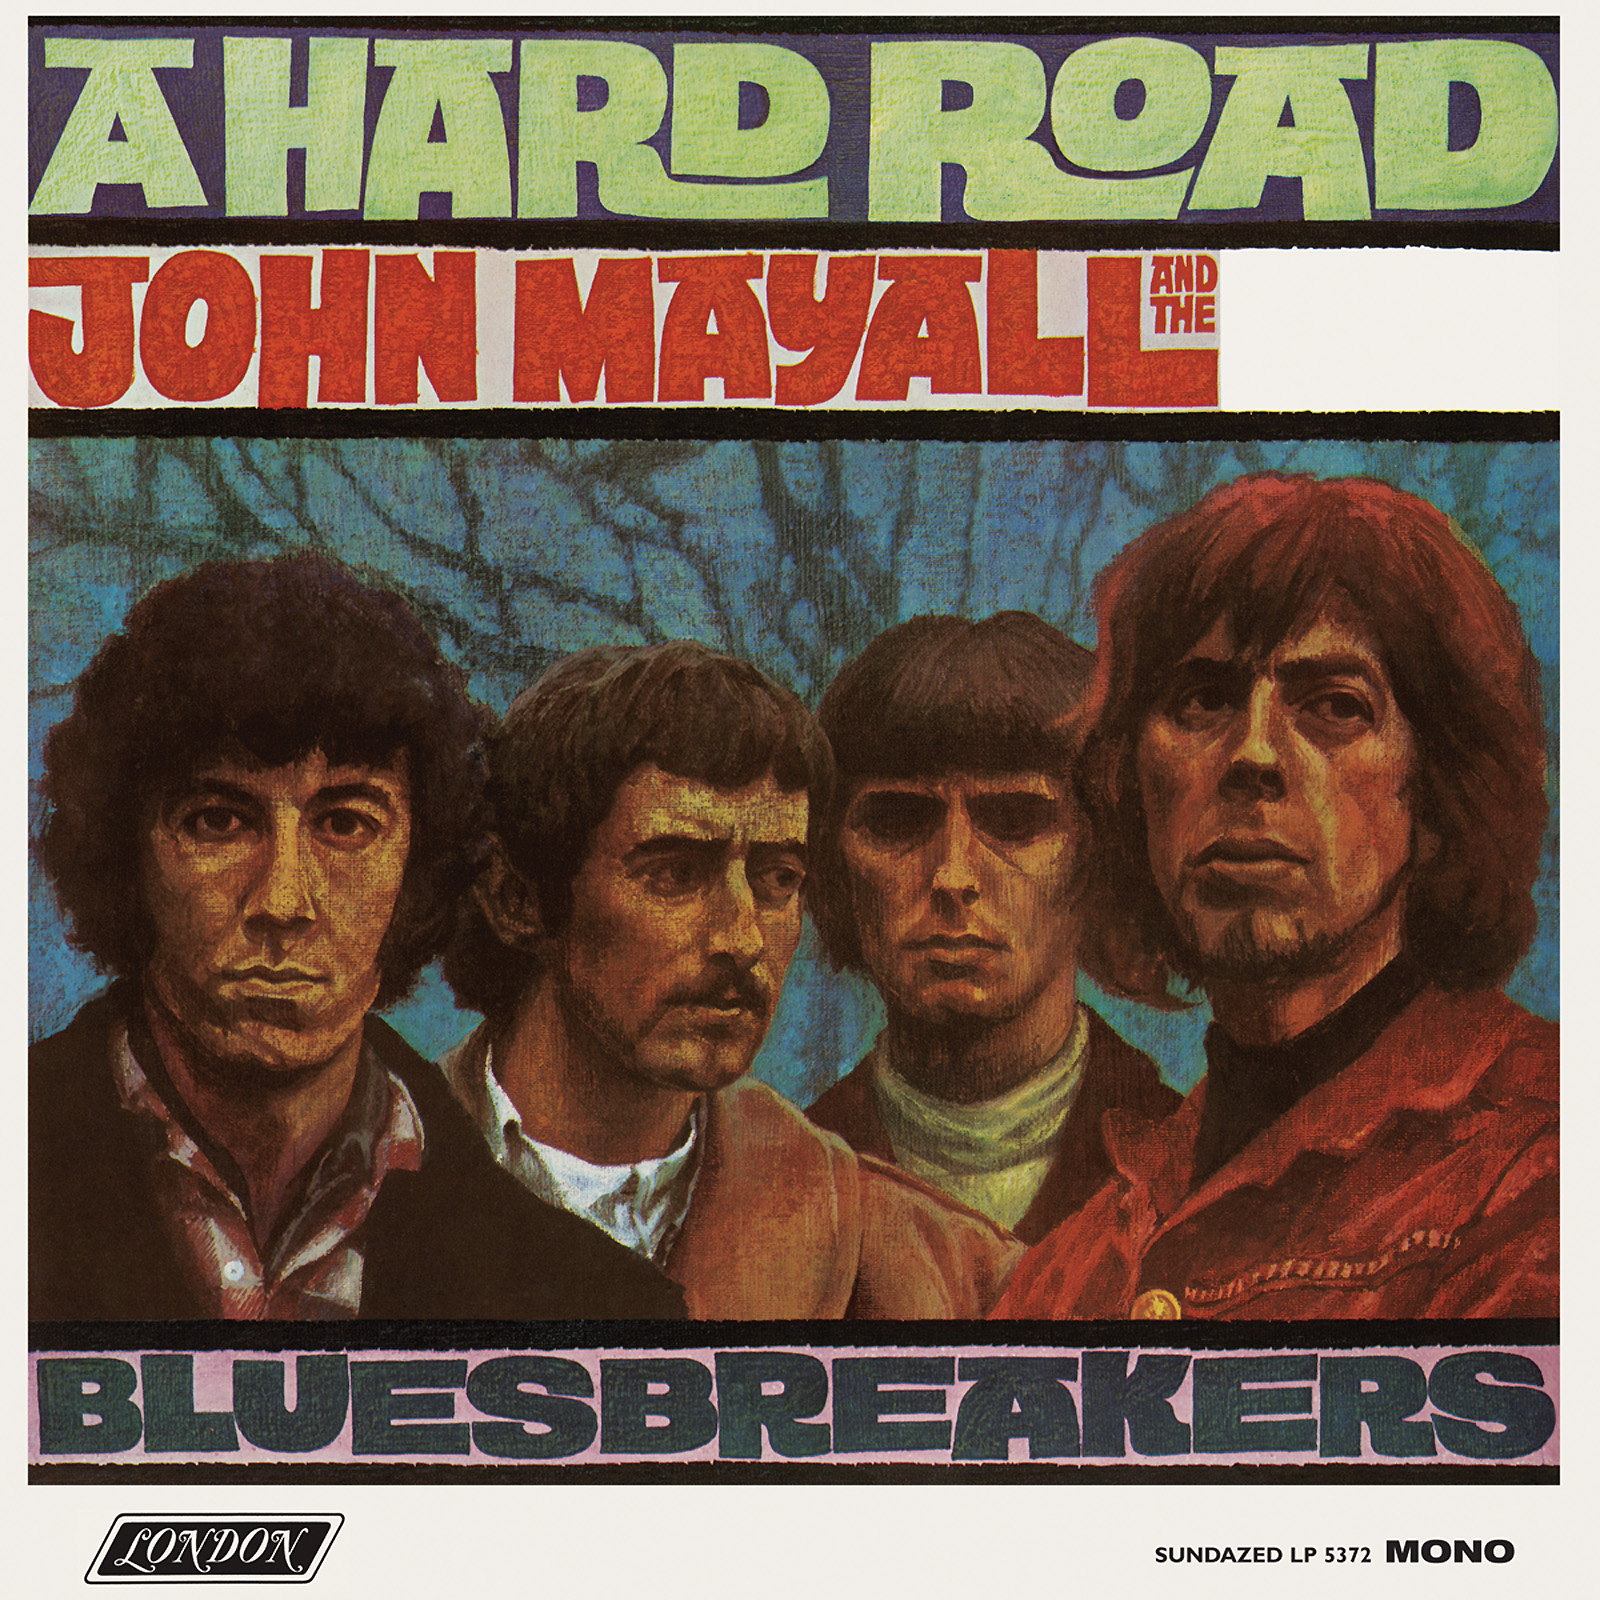 Mayall, John and the Blues Breakers - A Hard Road - MONO LP - WHITE VINYL